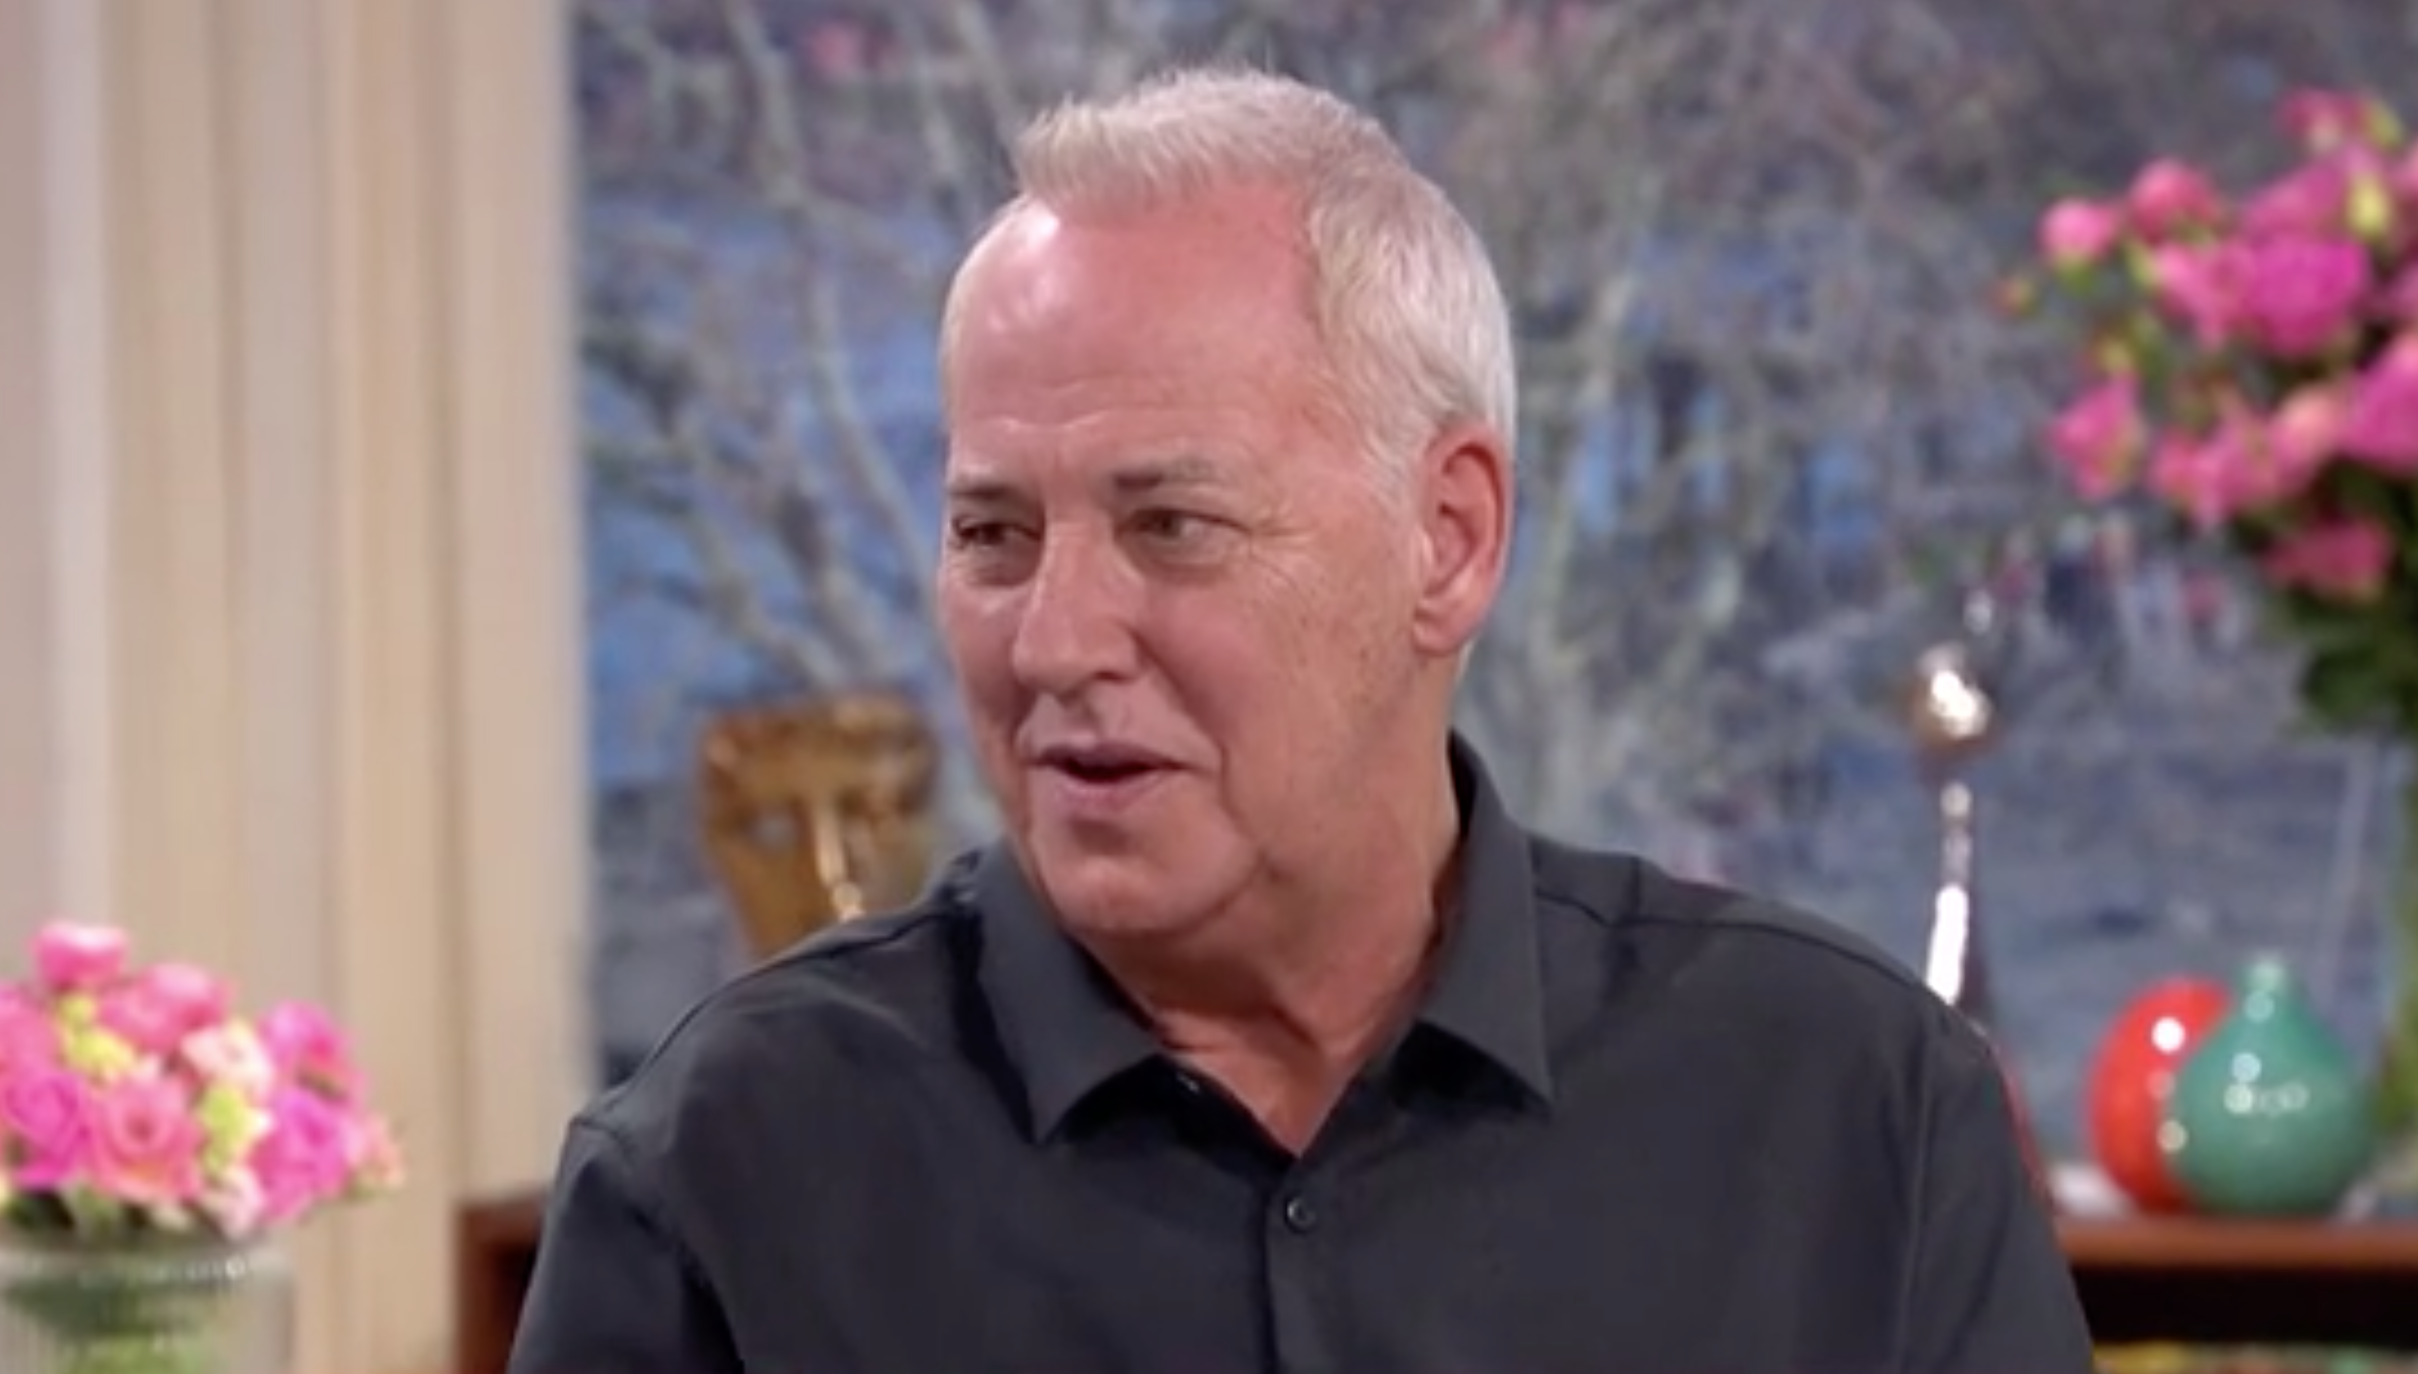 Phillip Schofield 'offers Michael Barrymore presenting work on This Morning' after Dancing On Ice exit